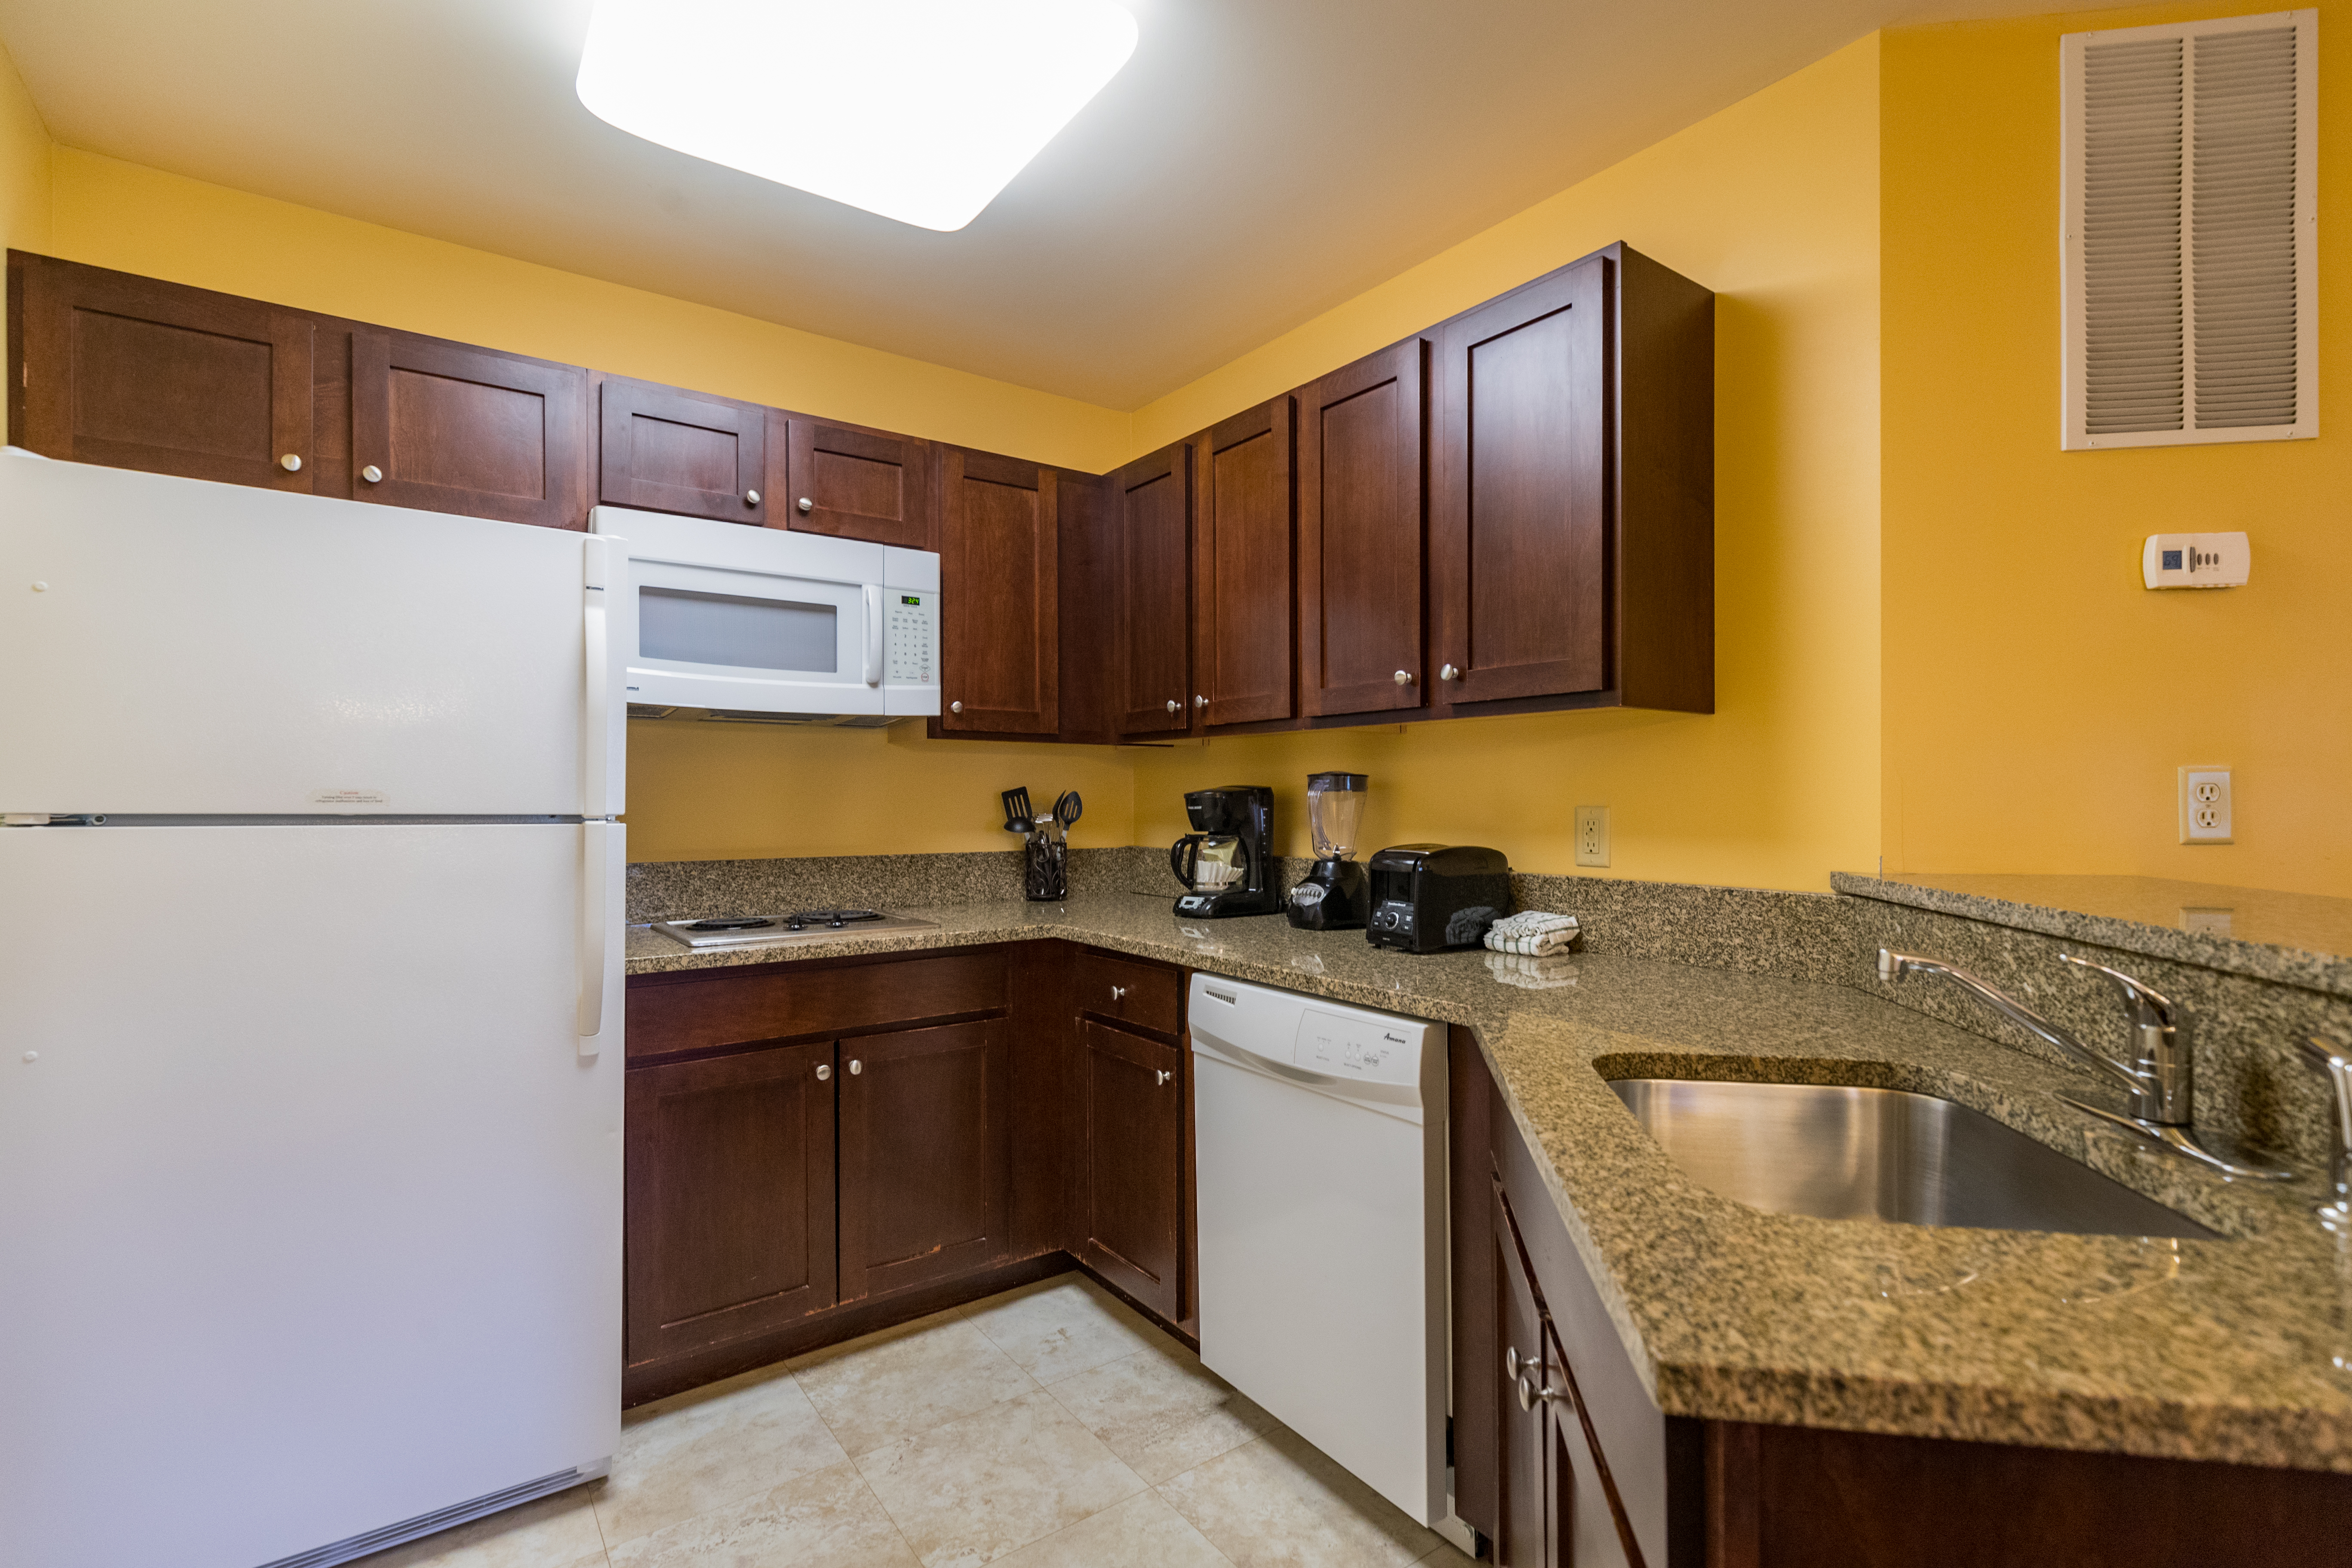 B Suite guest partial kitchen with granite counter tops and two burner cooktops, Vacation Village in the Berkshires